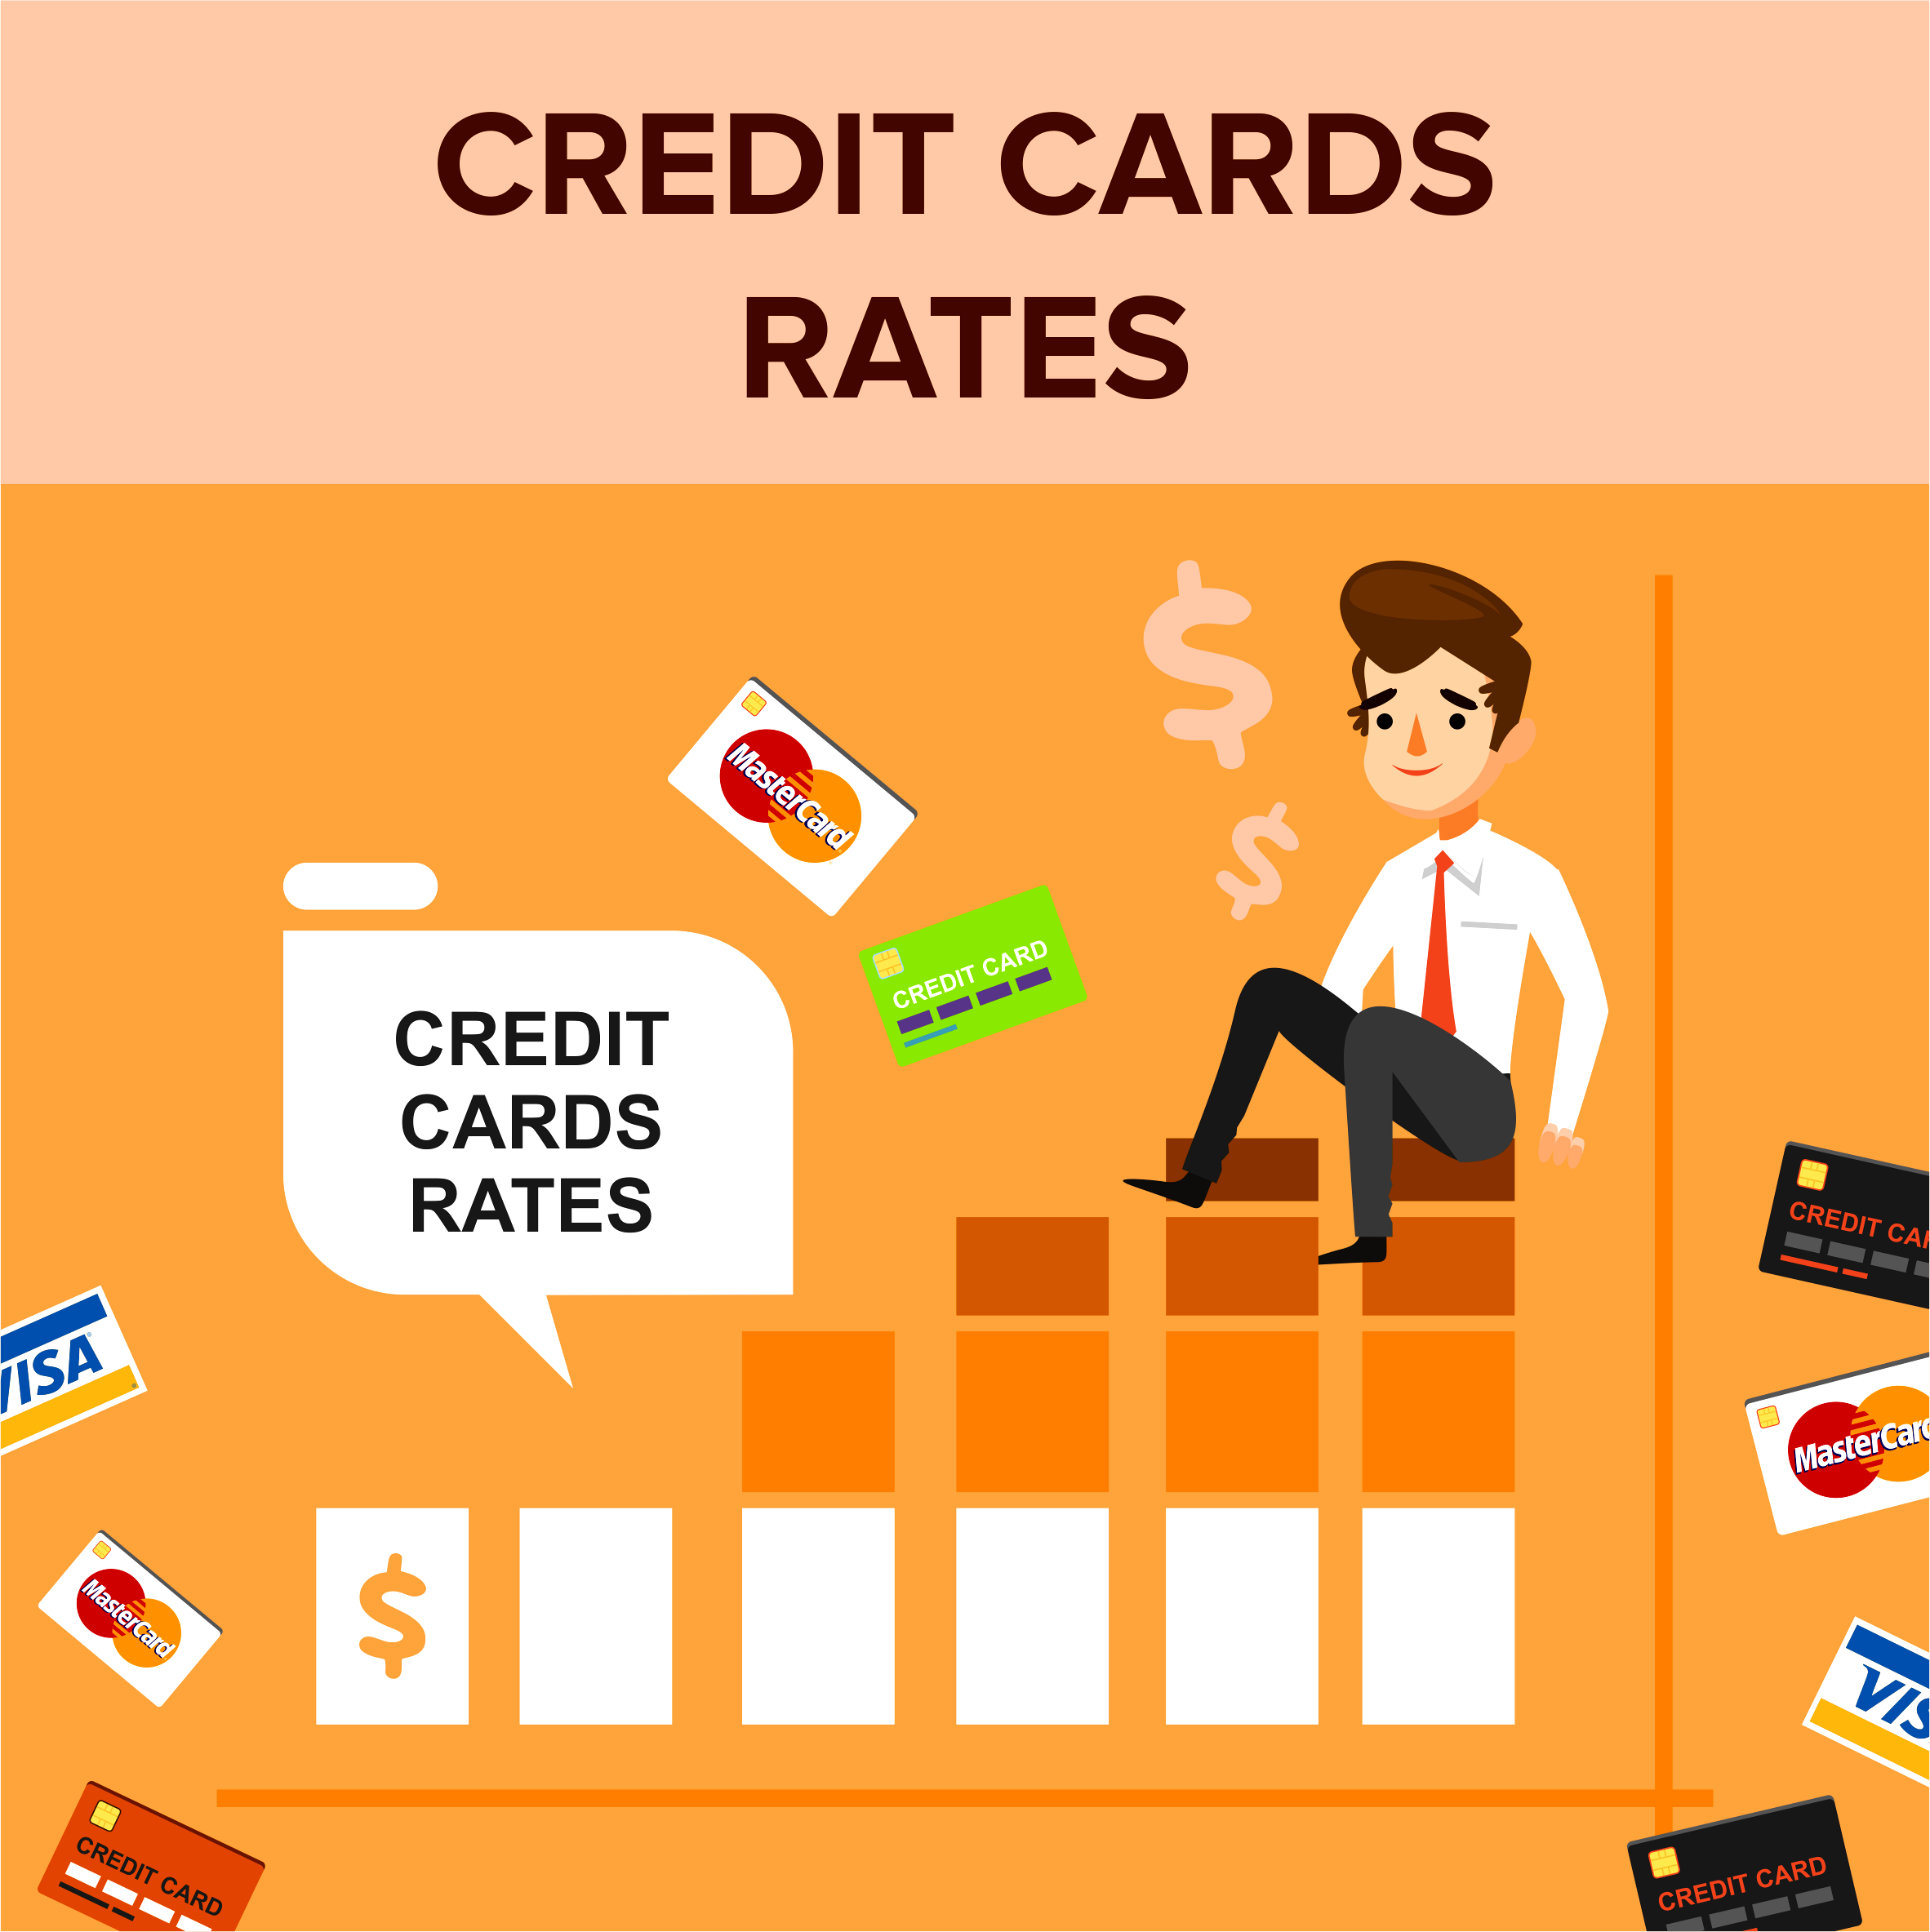 Credit Cards Rates in Canada